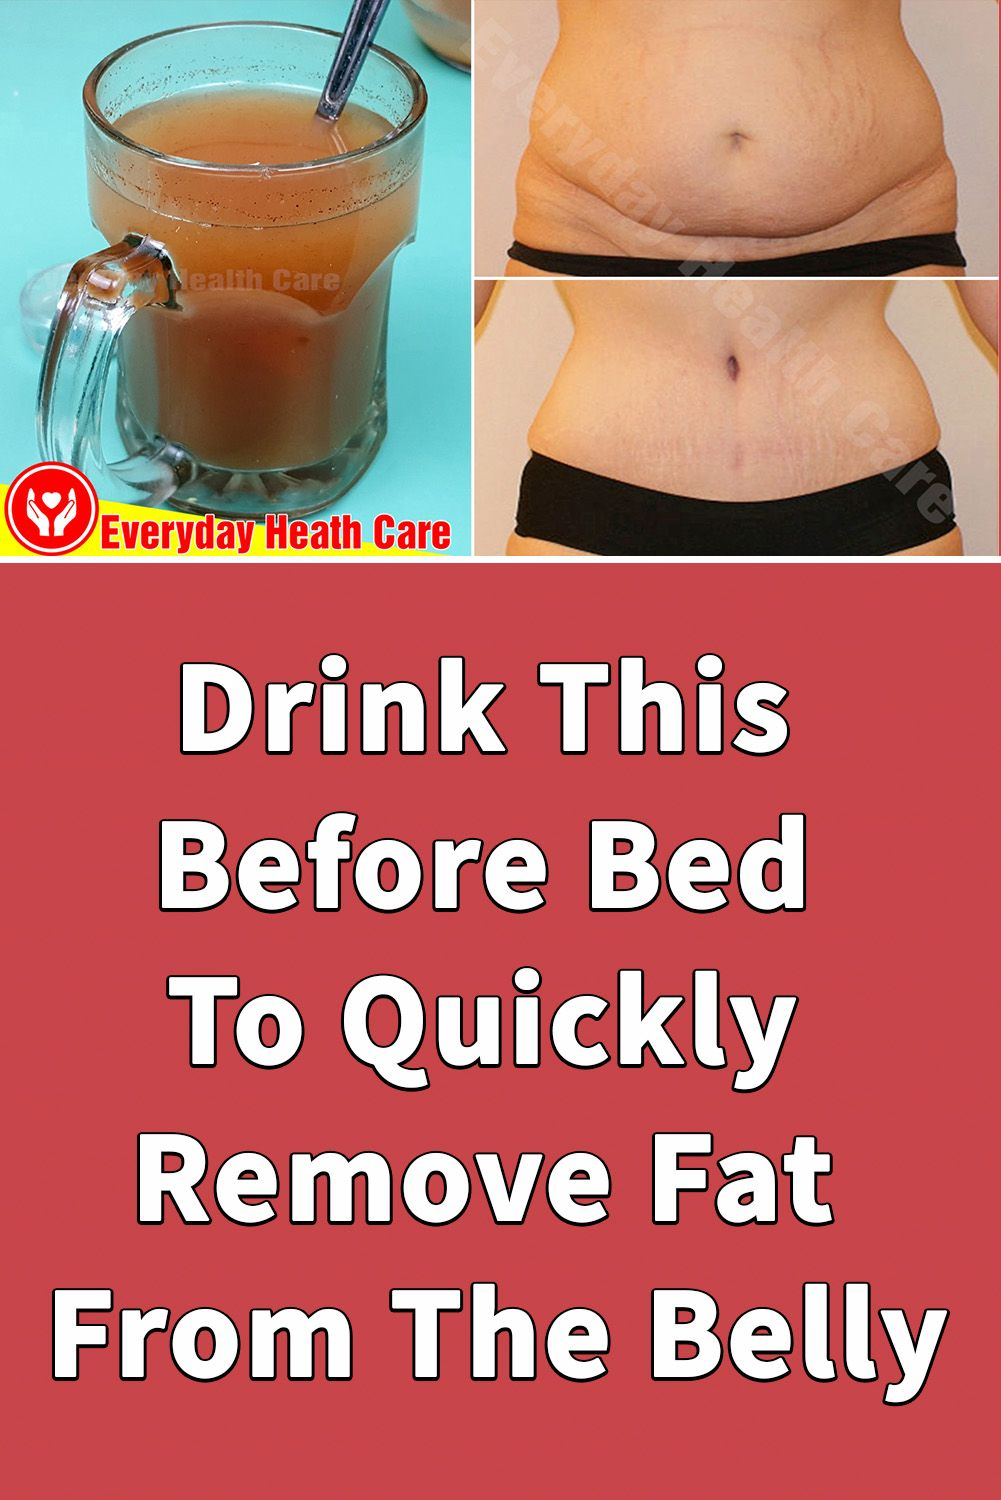 Pin on How To Lose Weight (belly fat) Quickly  Everyday Health Care